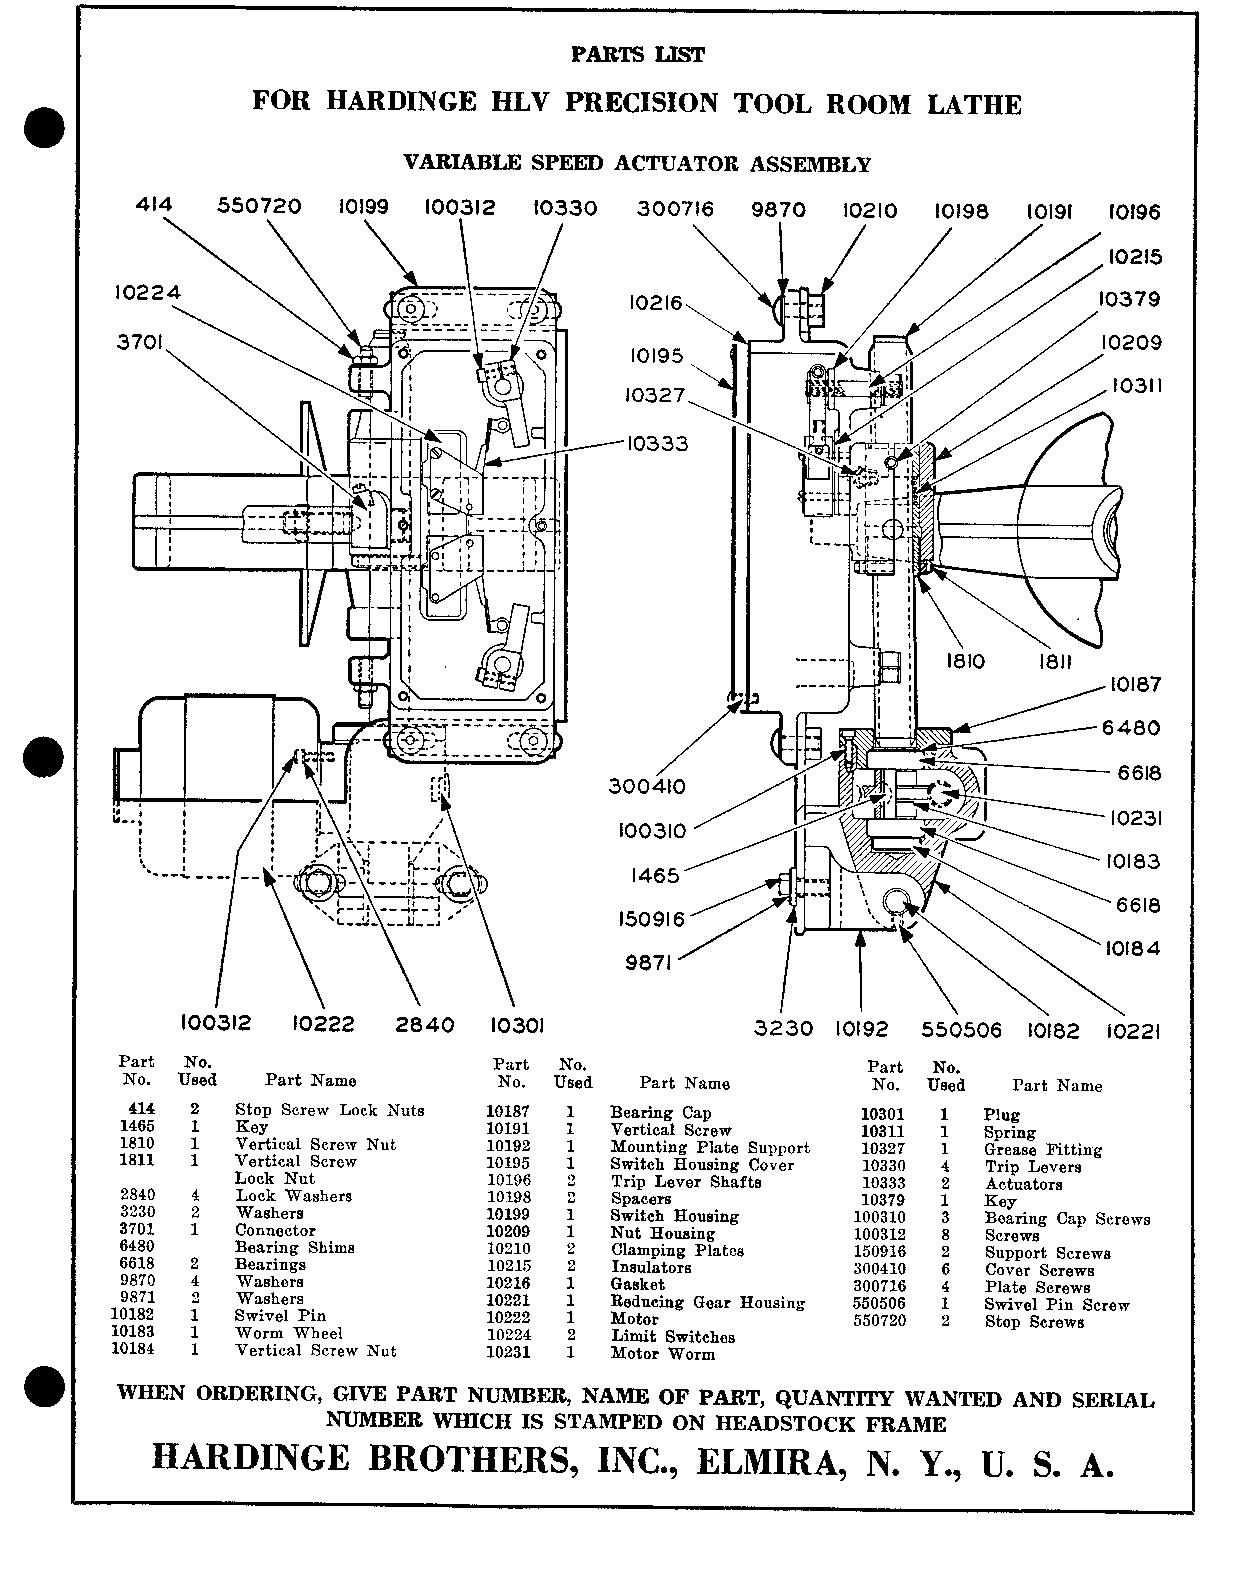 Rheostat Circuit Problems Guide And Troubleshooting Of Wiring Wye Delta Diagram Tubs Over Head Hardinge Lathe Diagrams 30 Images Originalpart Co Large Analog Rotary